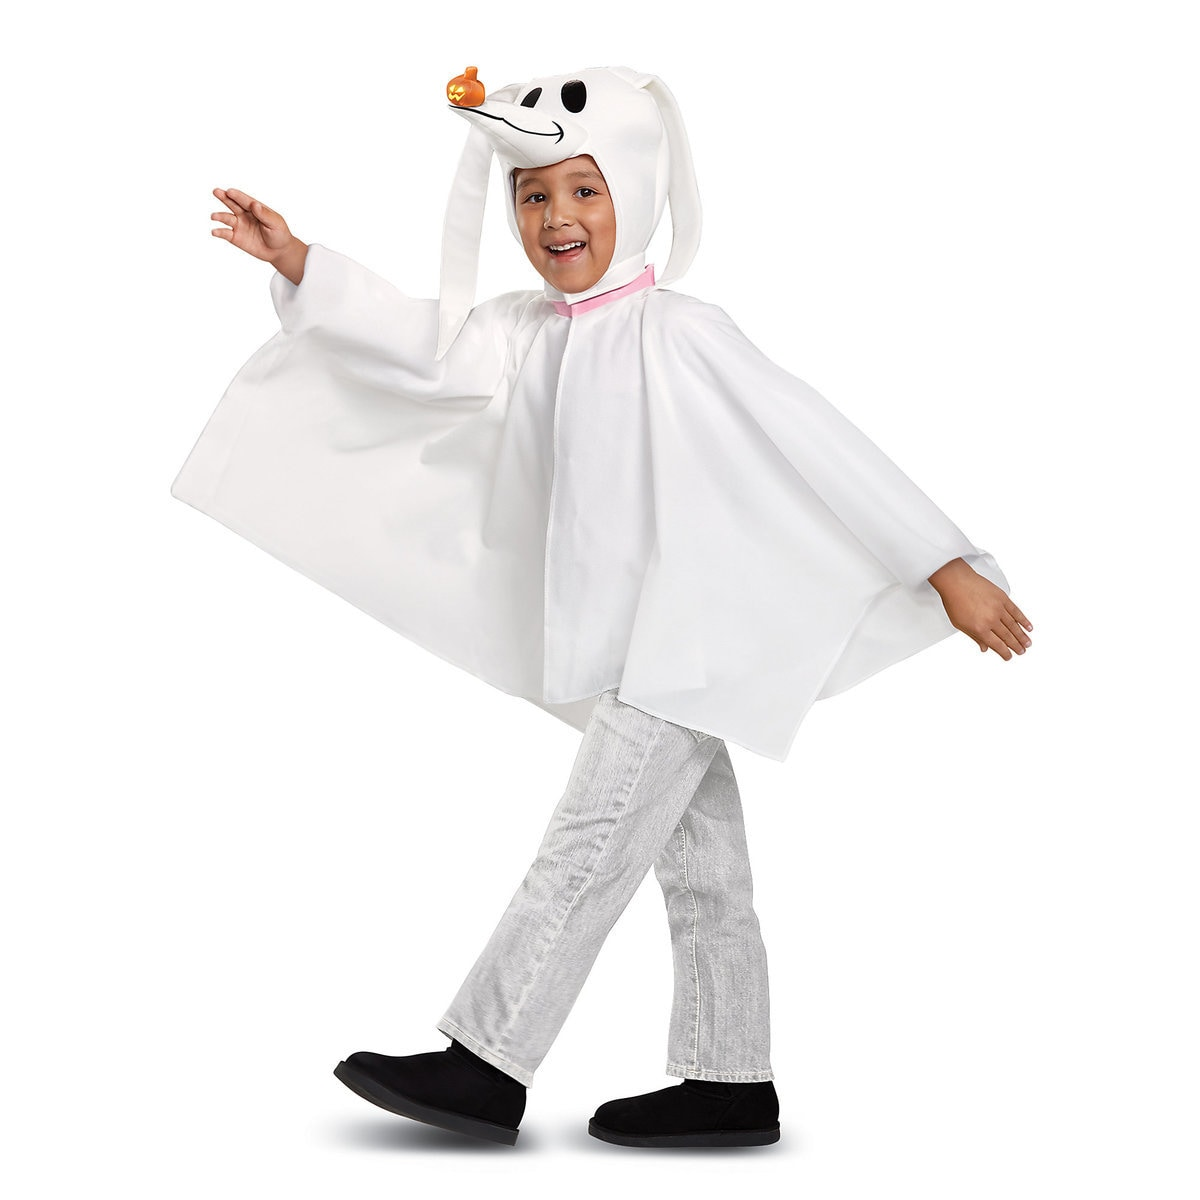 Zero Light Up Costume For Kids By Disguise The Nightmare Before Christmas